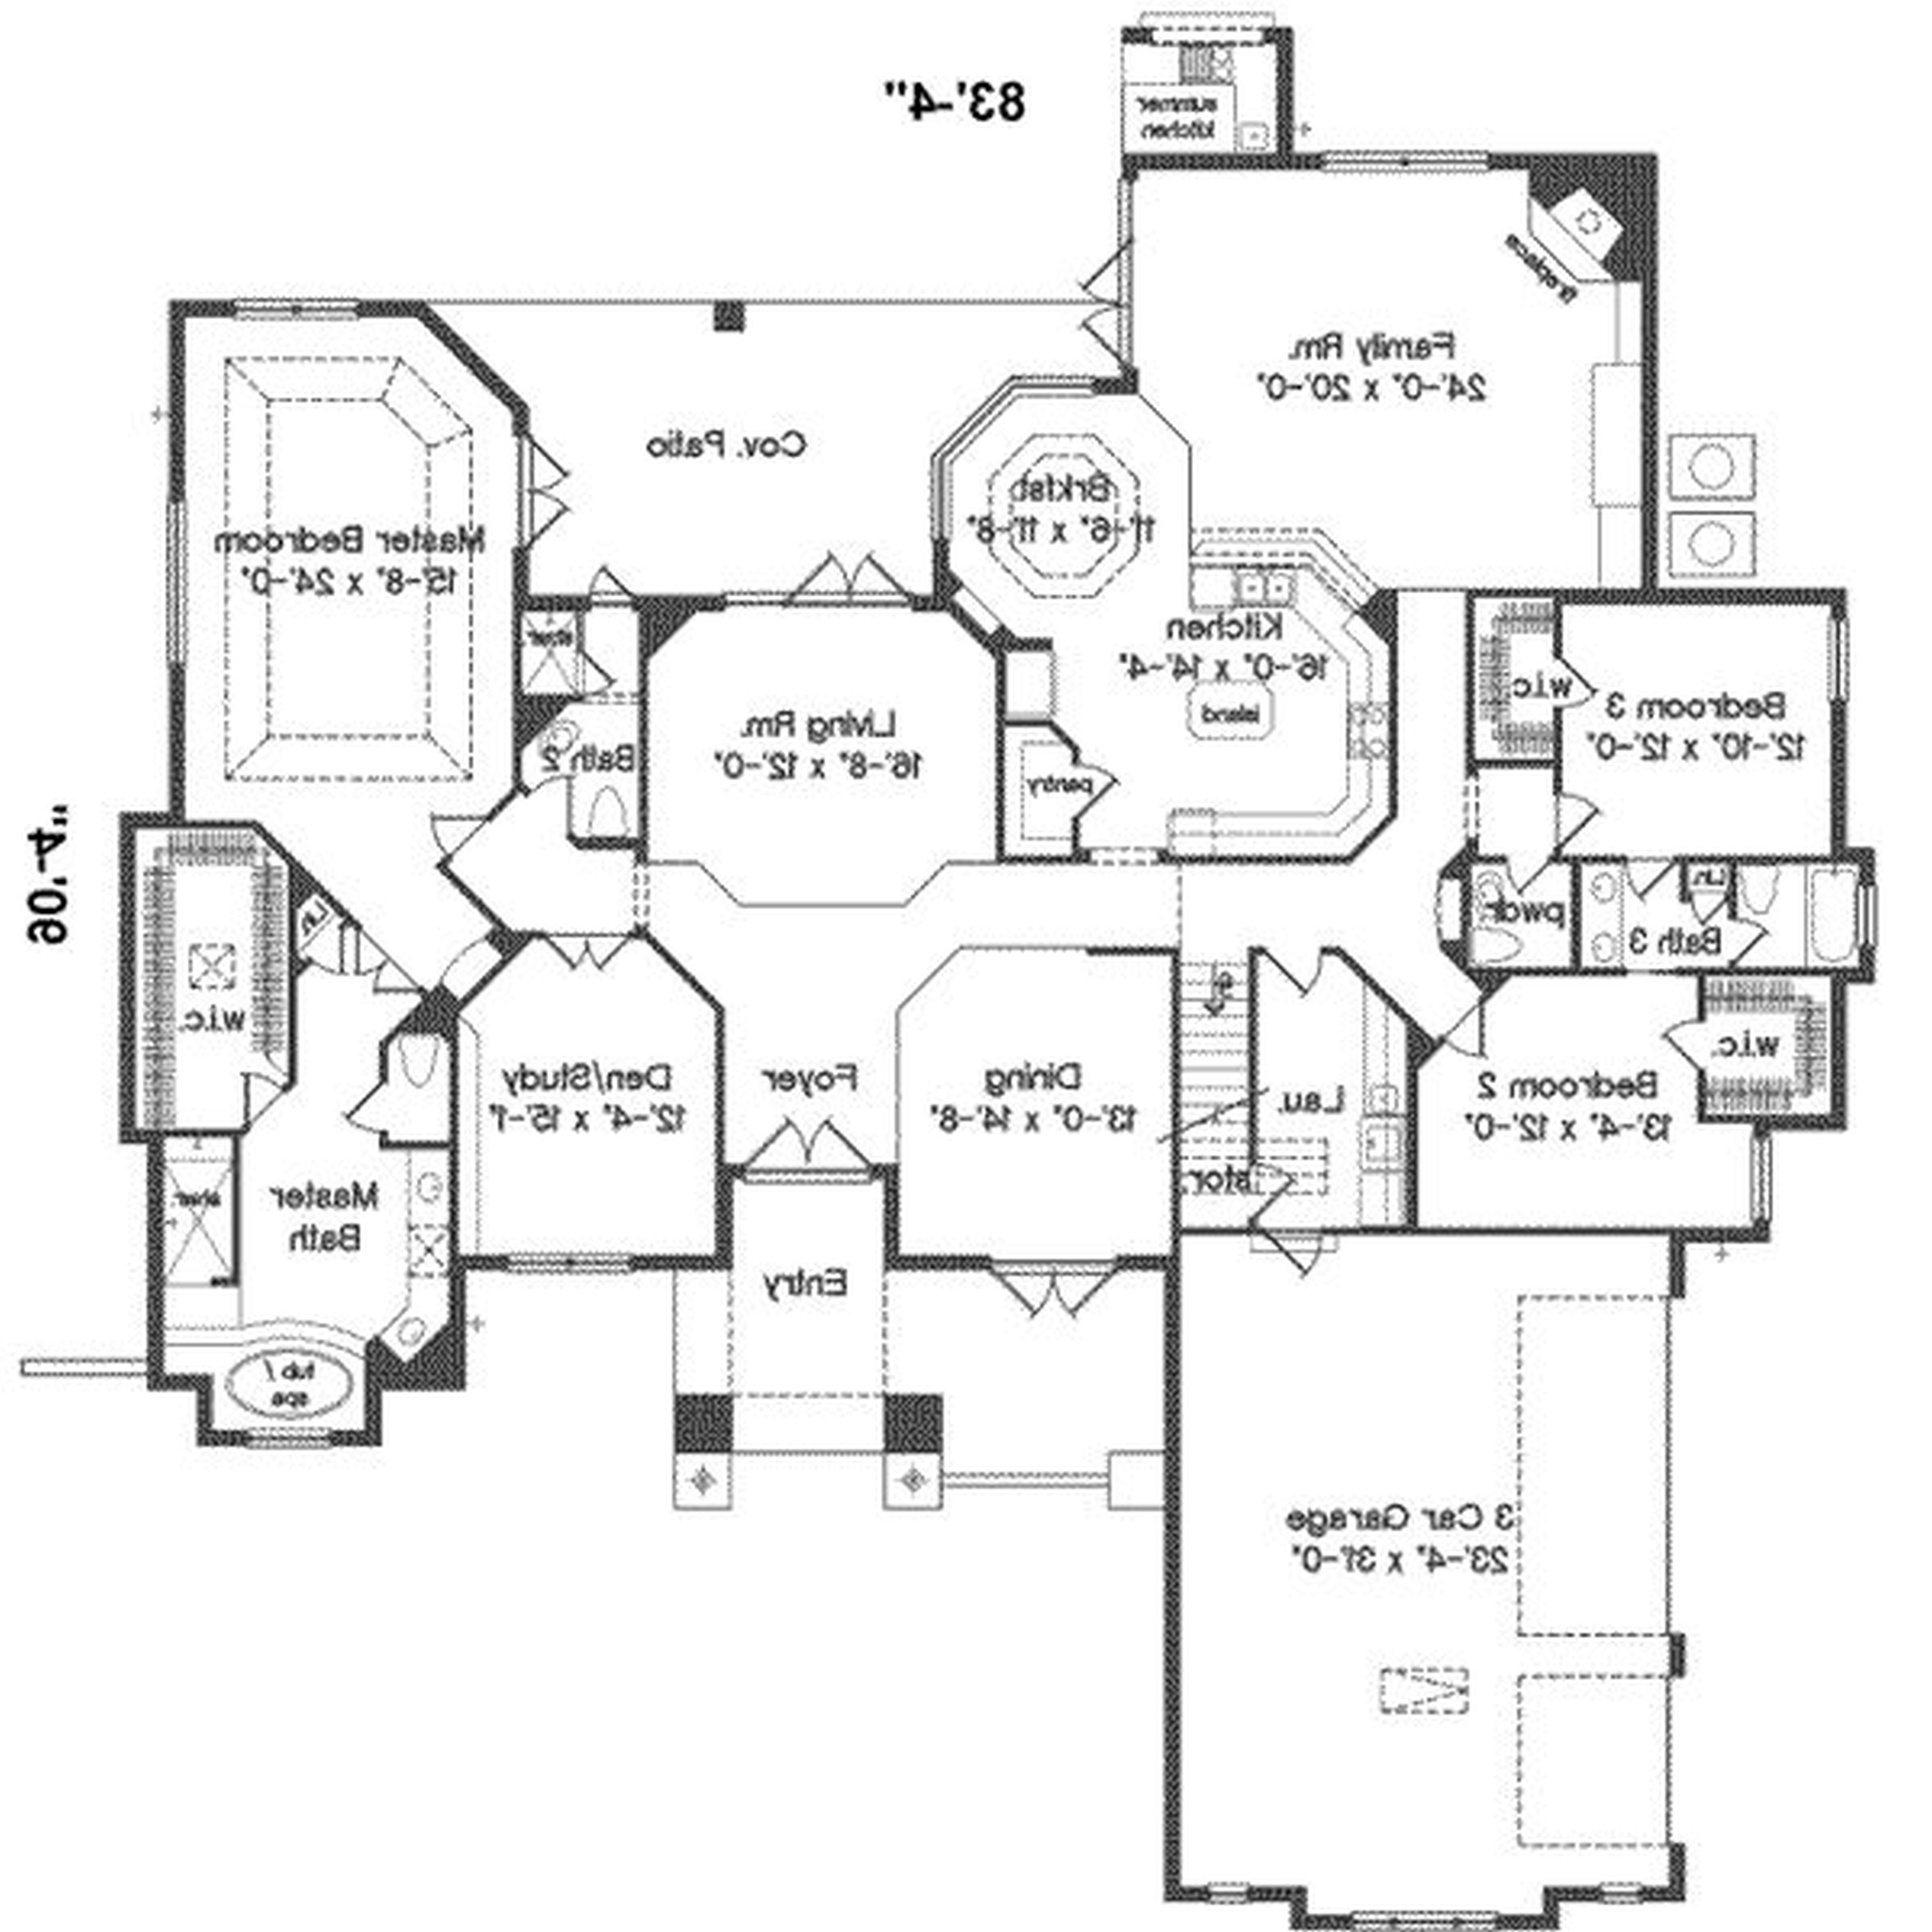 5000x5000 Bedroom Decor Car Garage House S Floor Design Plans With Attached